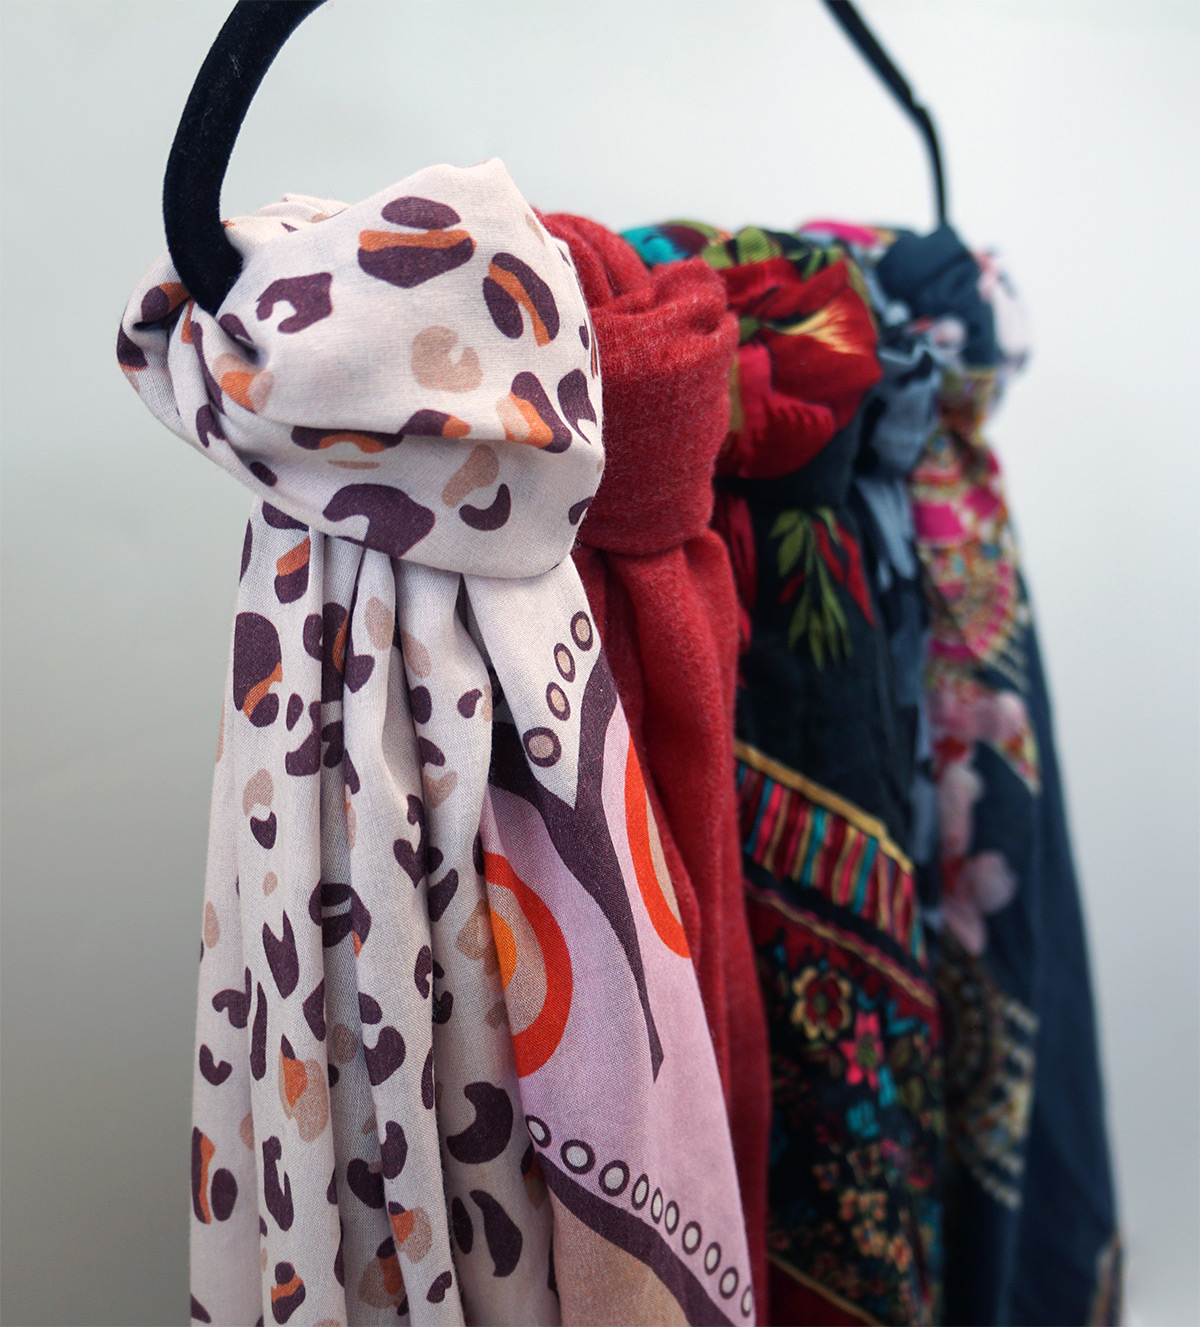 How to look after, launder and store delicate scarves   Top tips for cleaning, storing and taking care of silk, wool, cashmere and cotton scarves